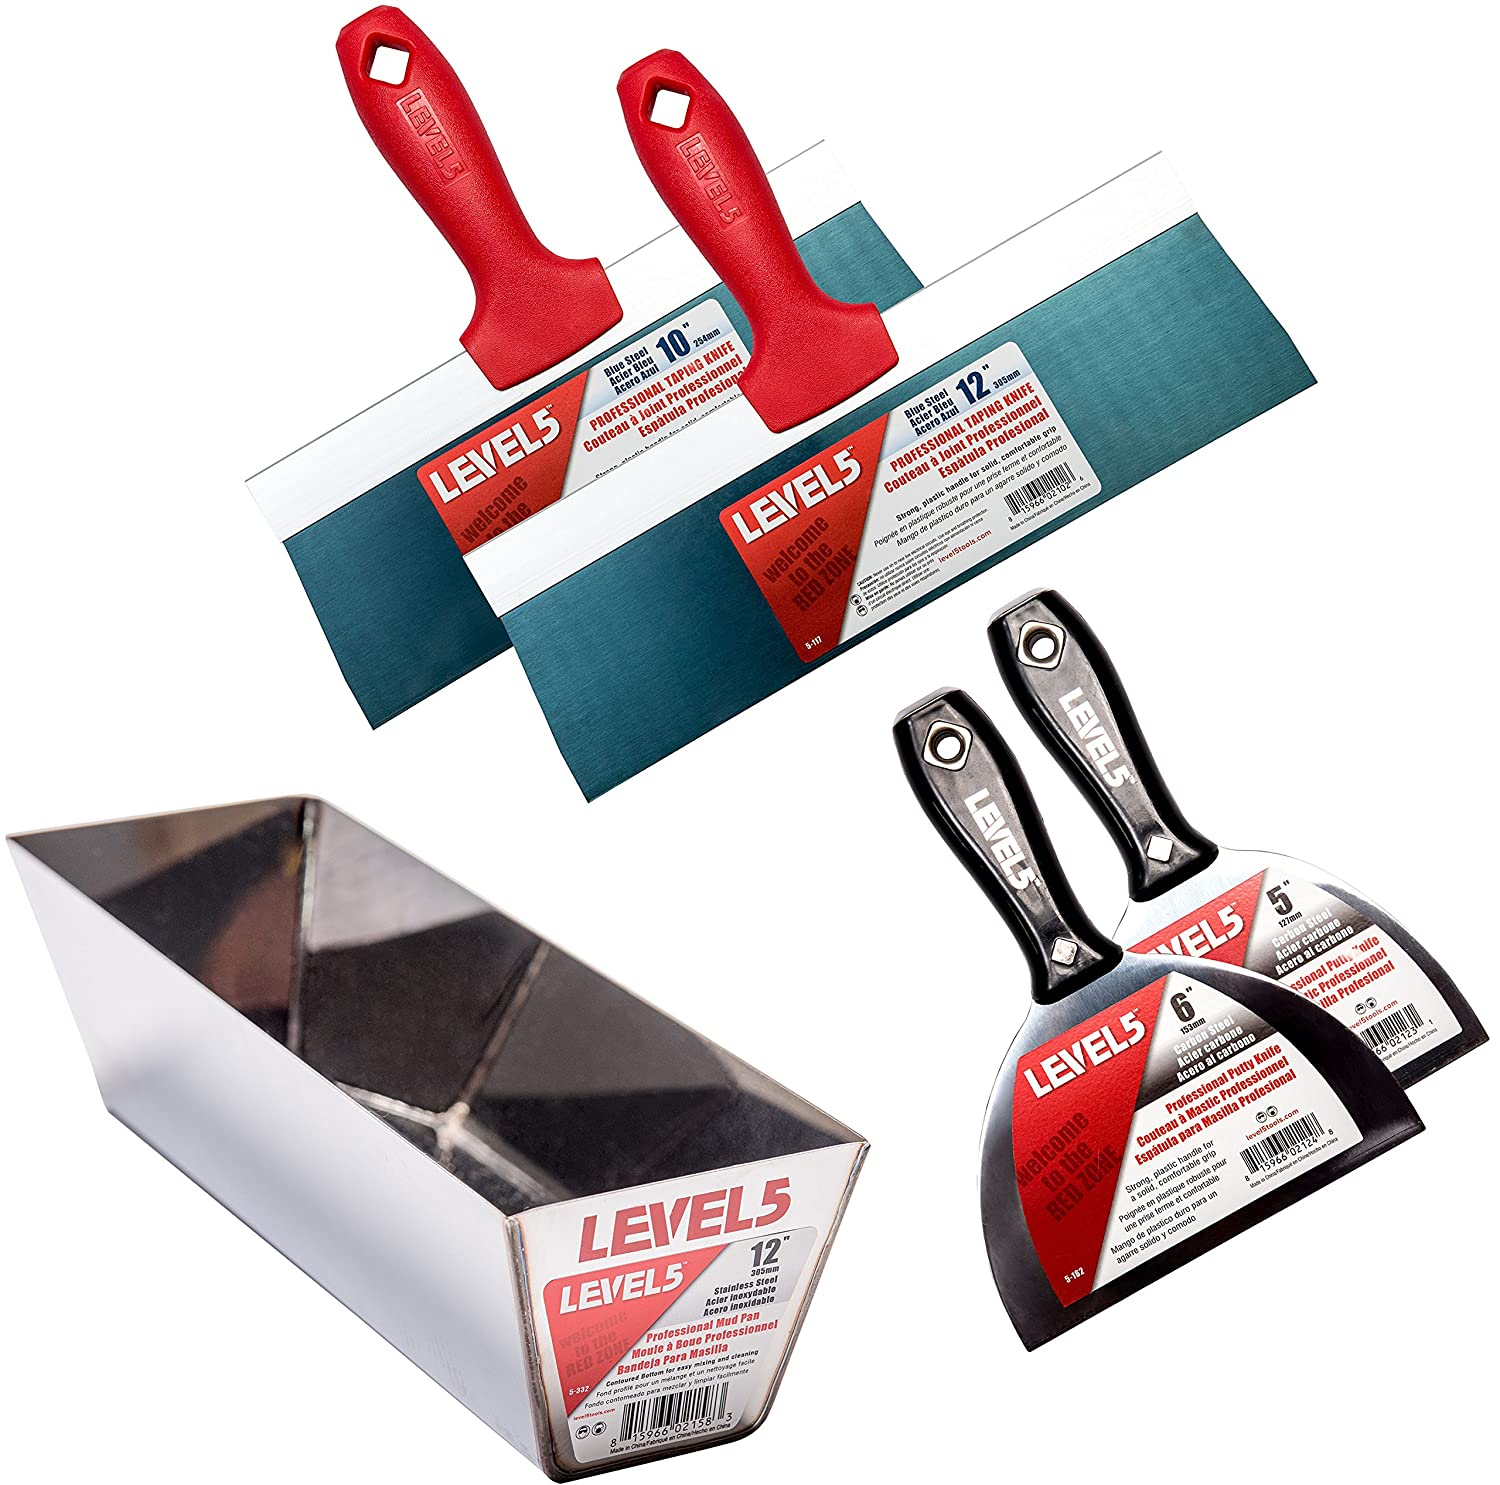 Pro Grade Economy Drywall Finishing Set | Taping and Putty Tool Blades, Knives, Pan | Sheetrock Gyprock Plasterboard | Level 5 Tools - - Amazon.com